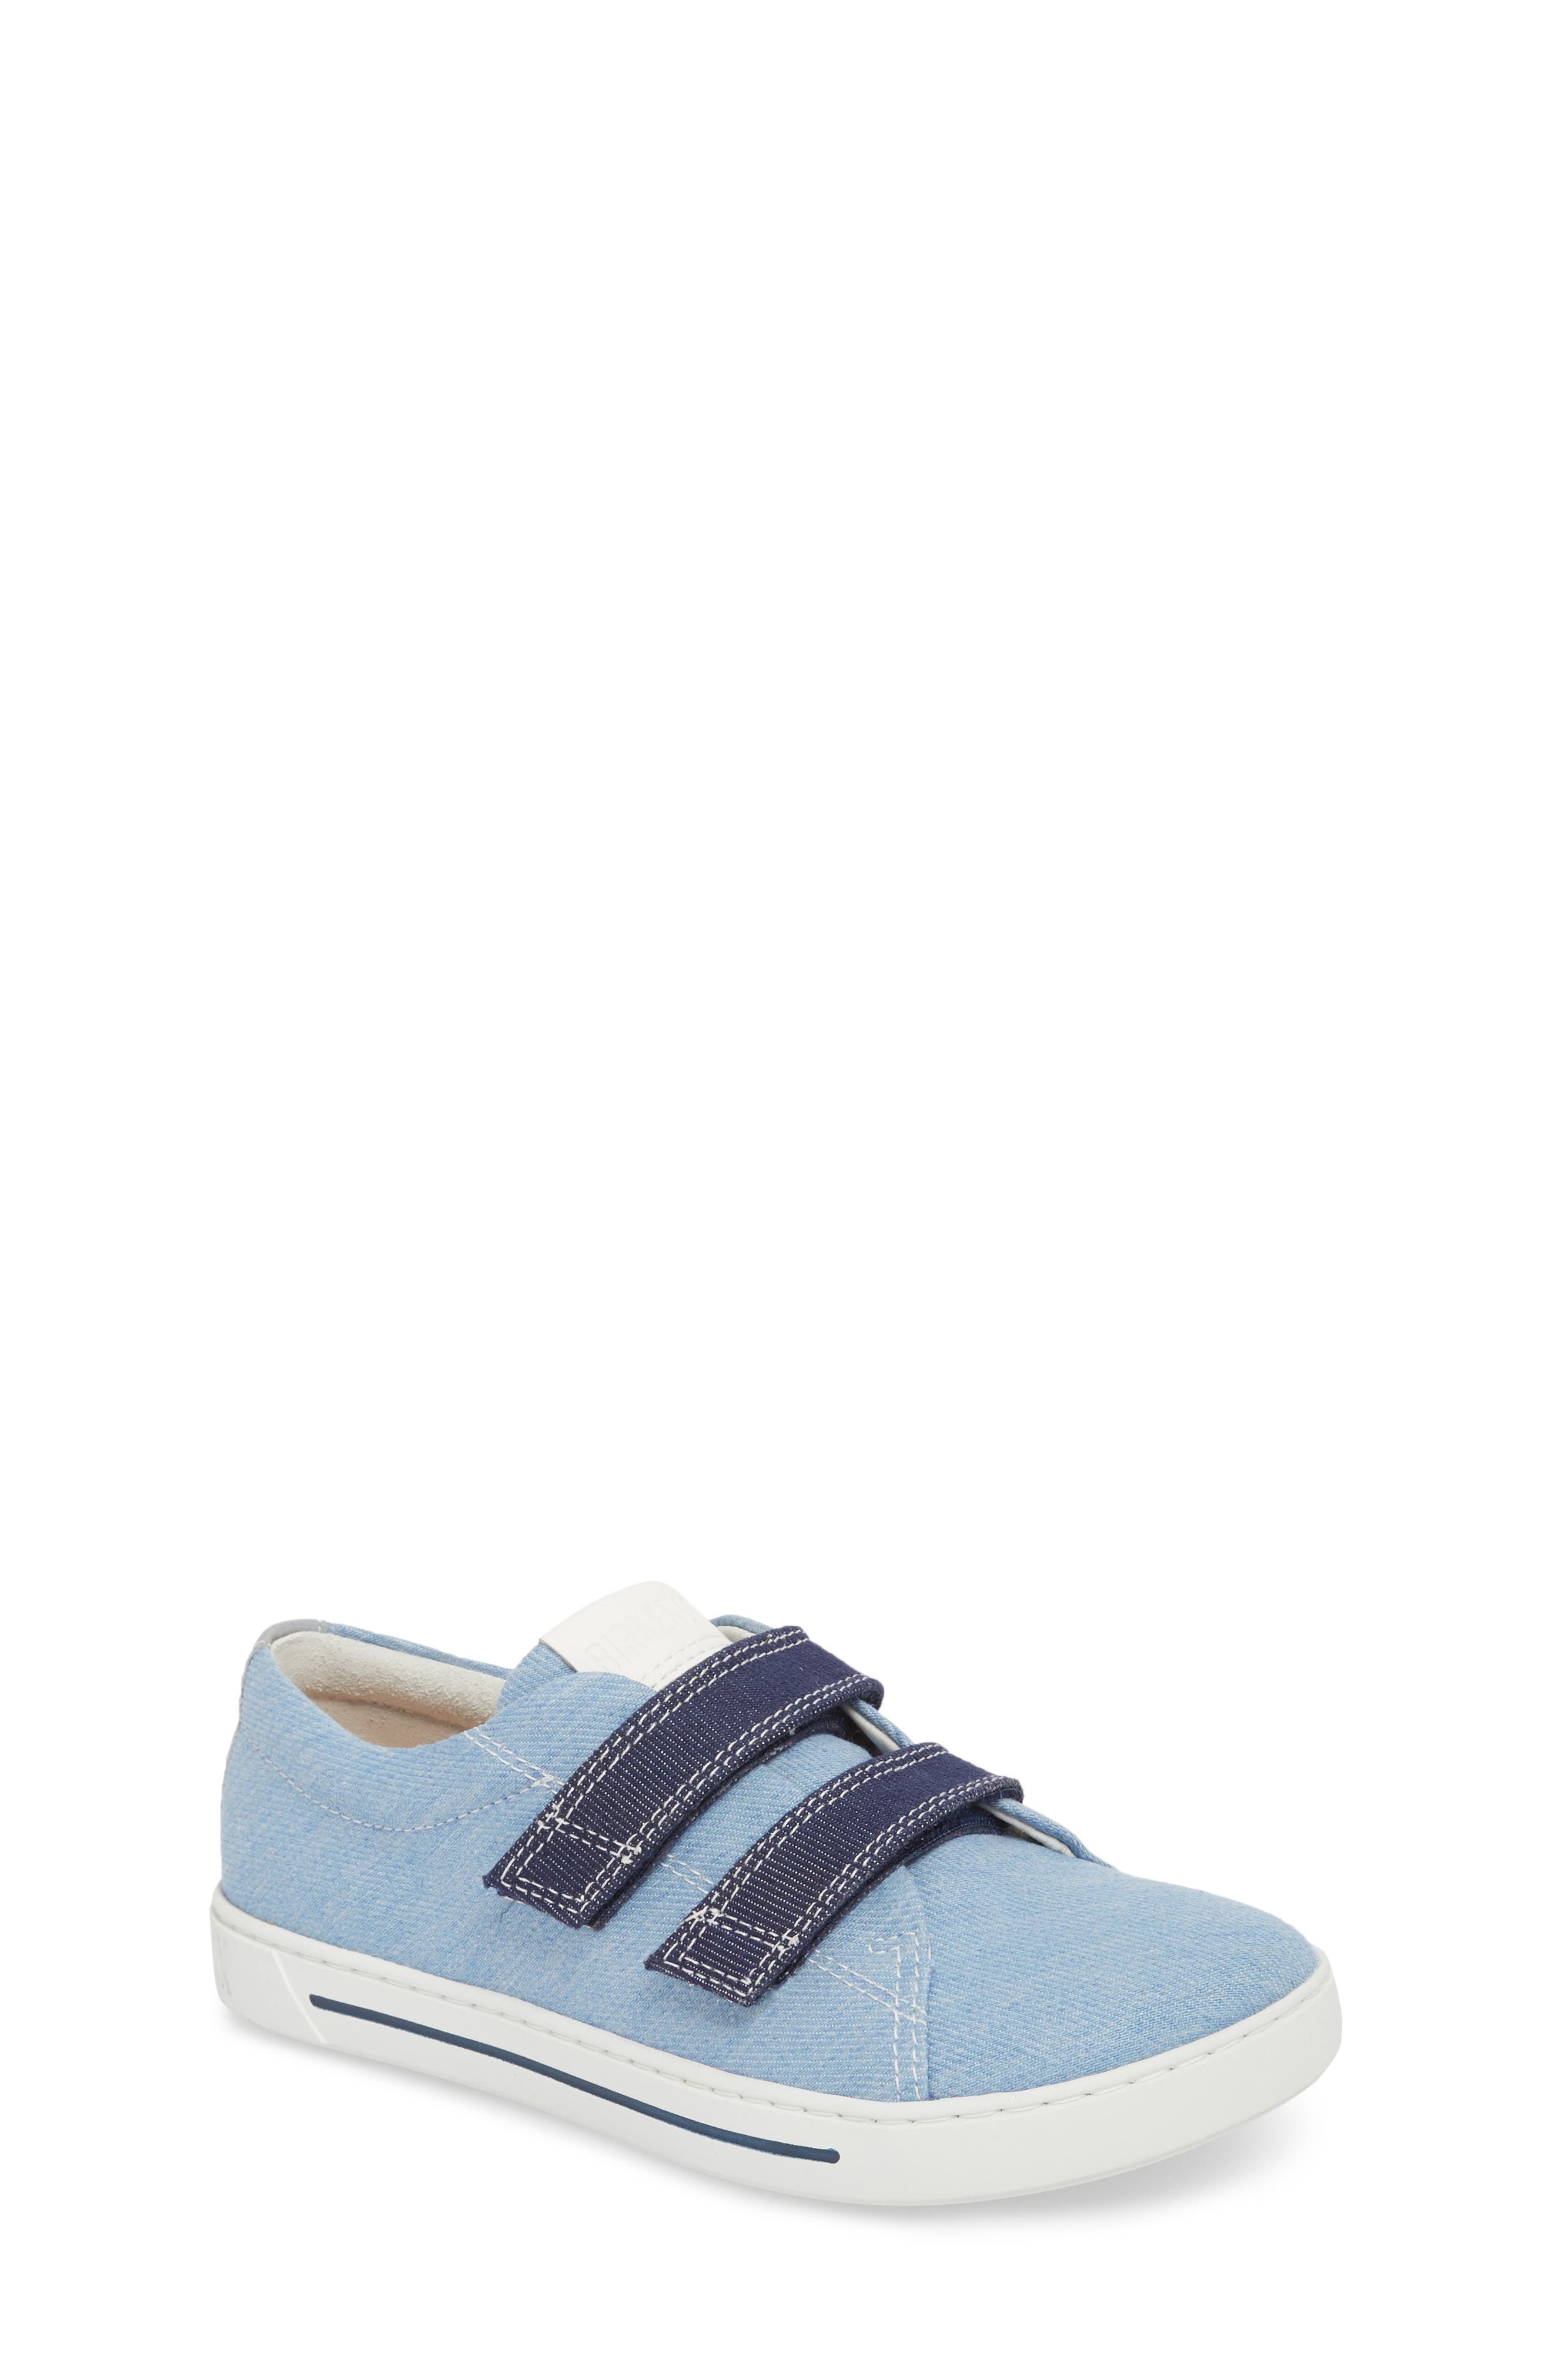 Birkenstock Arran Sneaker (Toddler & Little Kid)